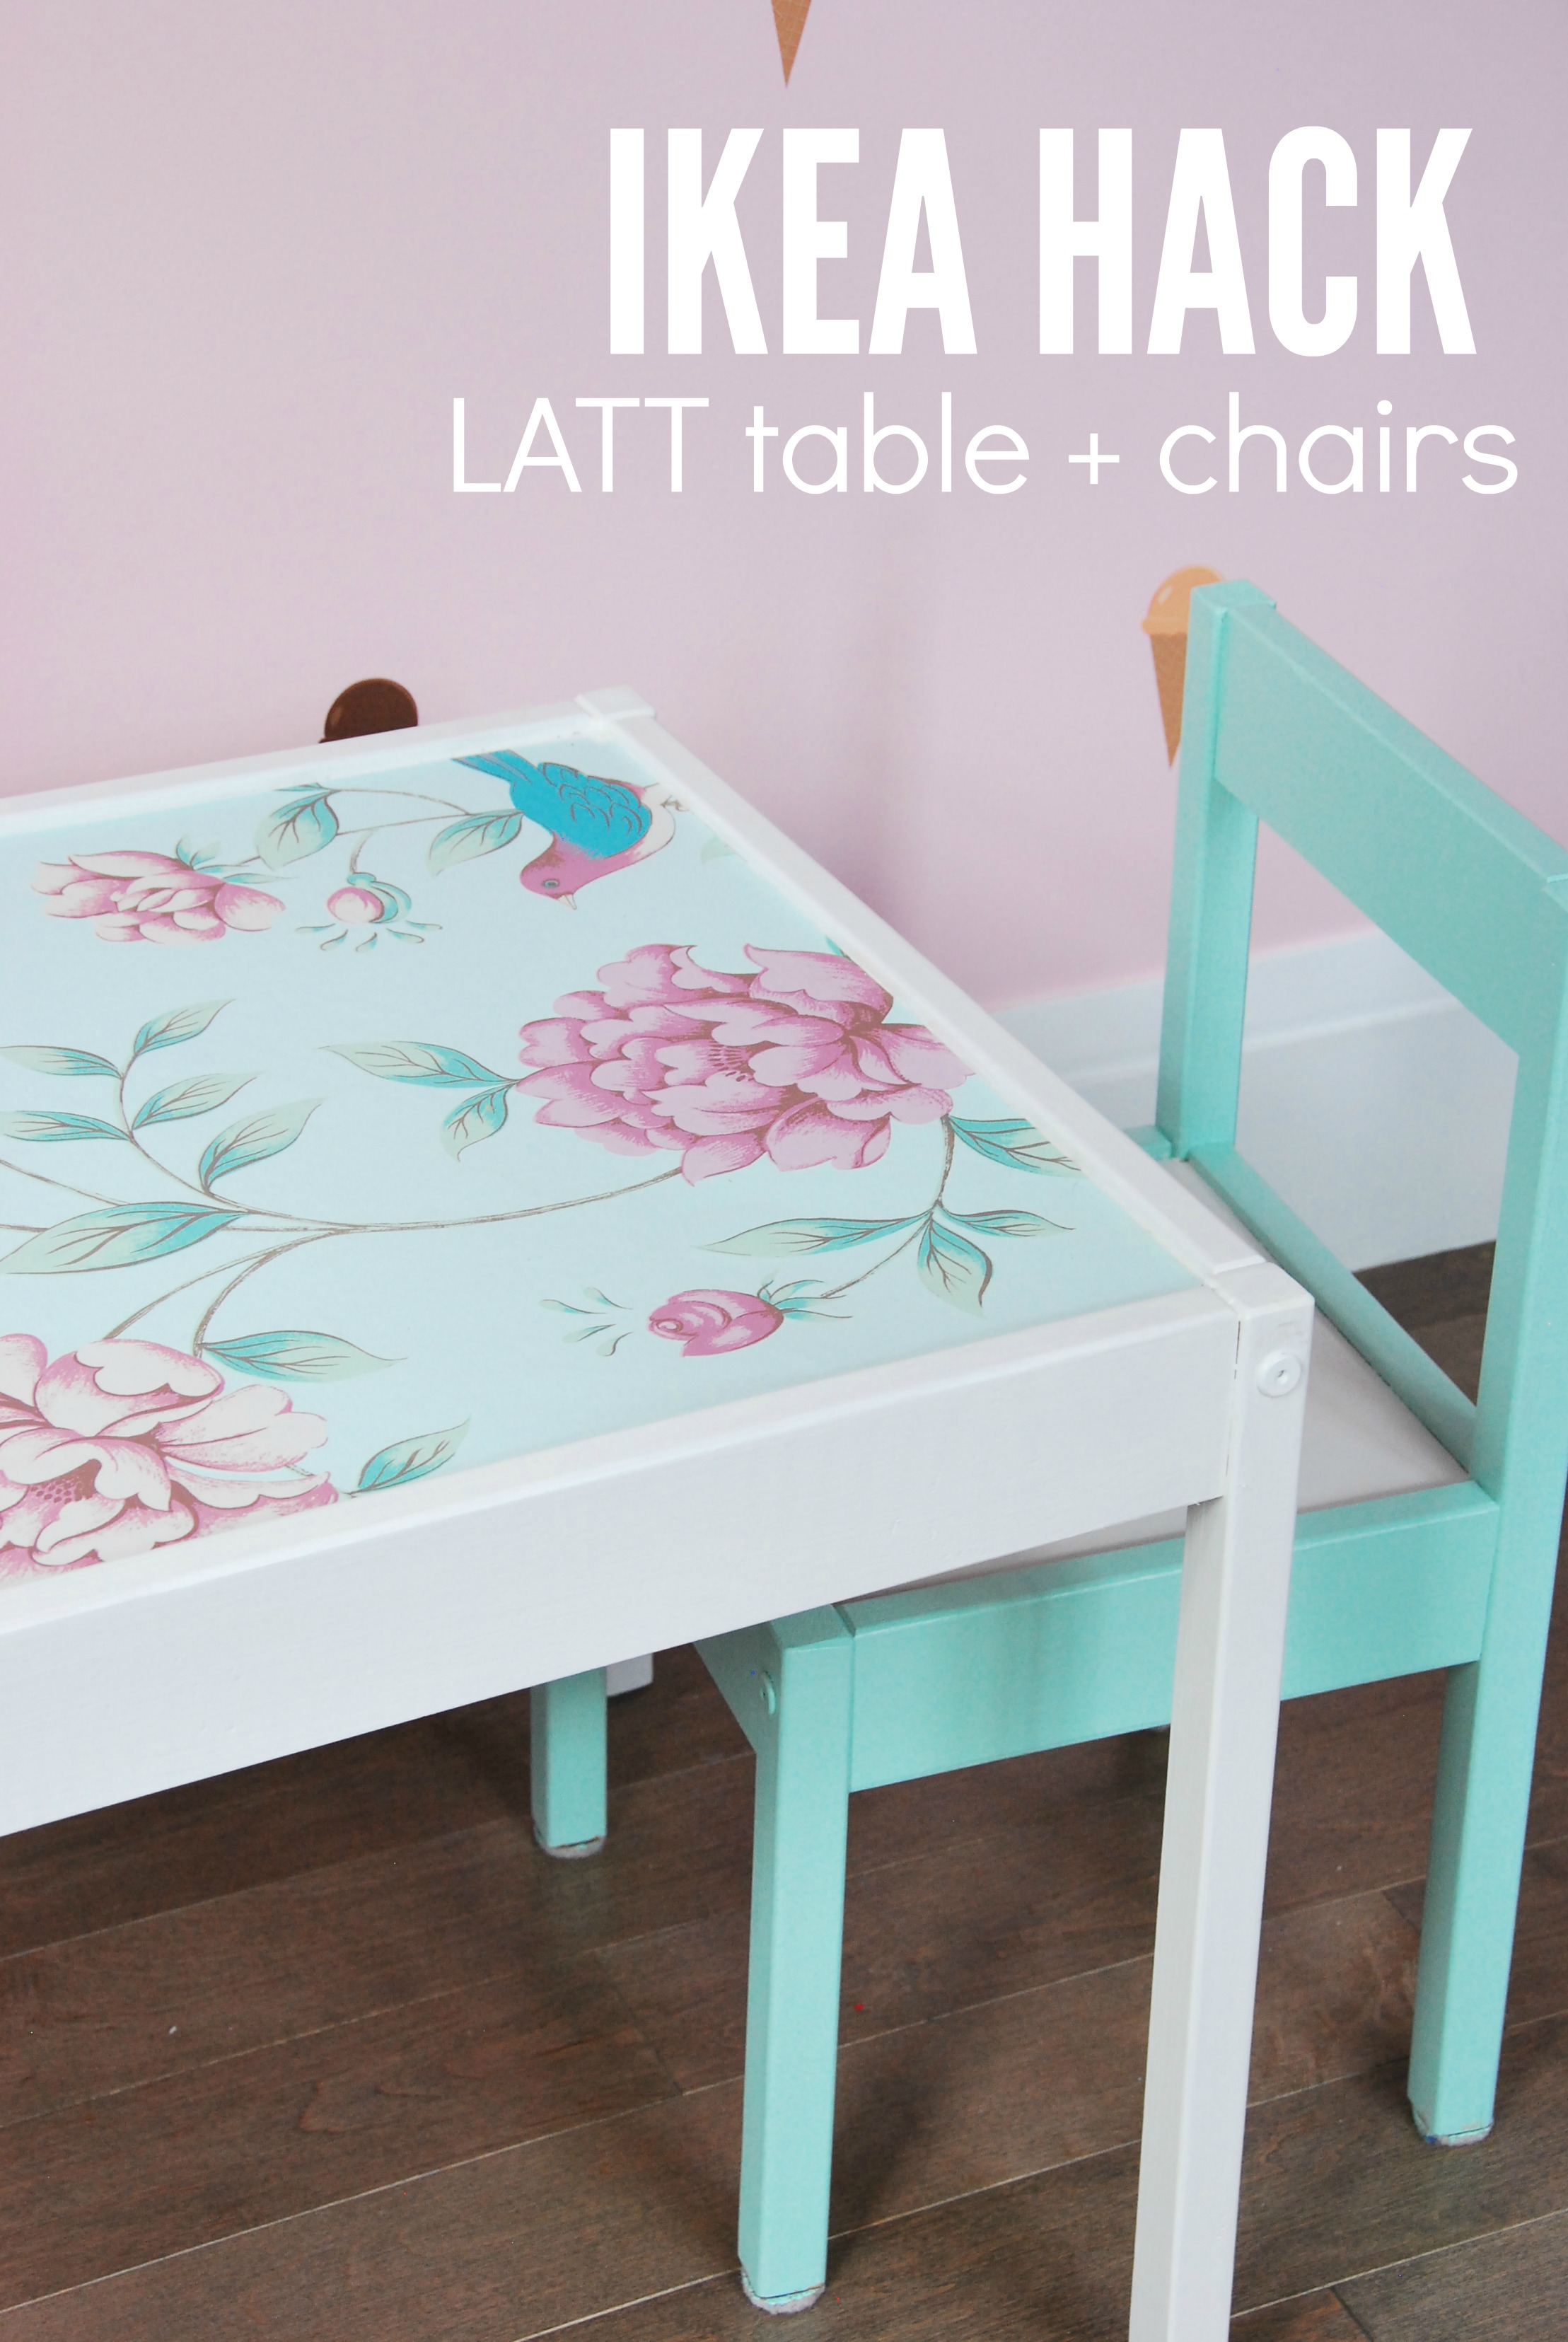 ikea-hack-latt-childrens-table-and-chairs-2-via-the-sweetest-digs